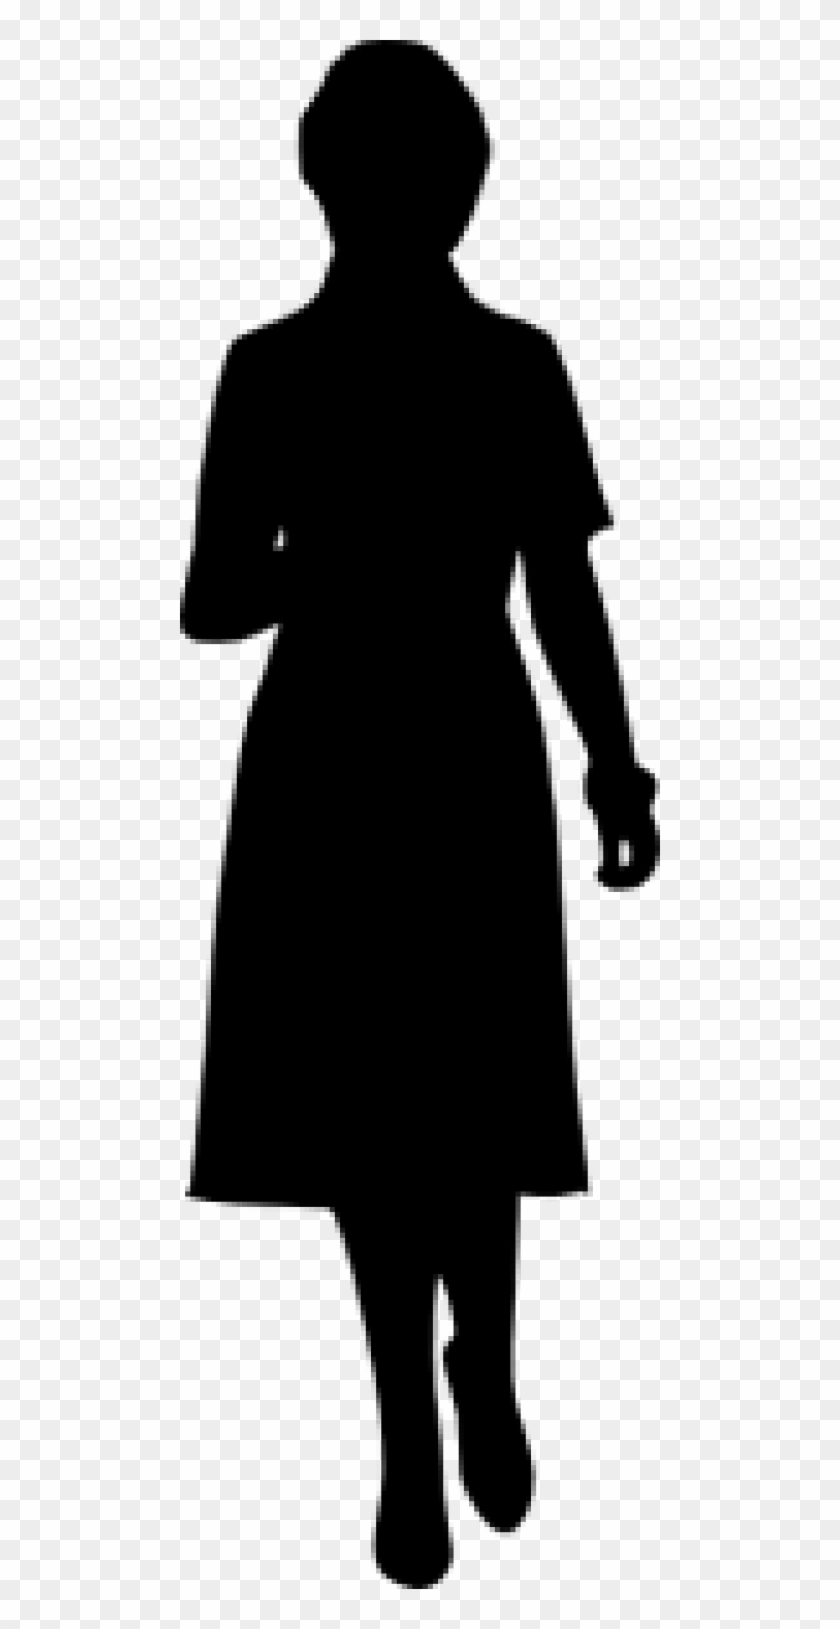 Silhouette Transparent Background : silhouette, transparent, background, Woman, Silhouette, Transparent, Background, Clipart, (#483201), PikPng